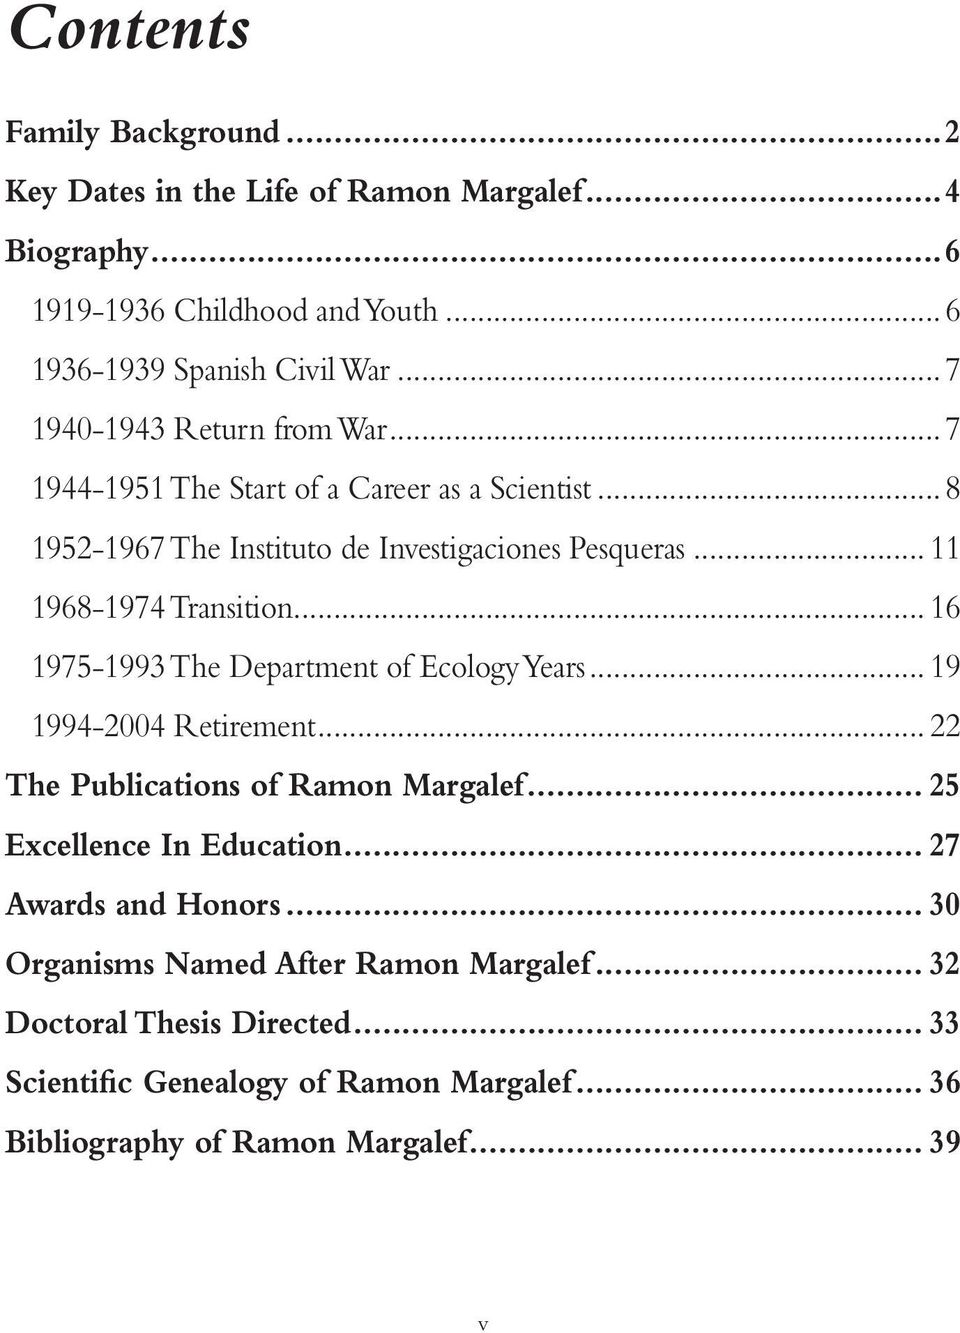 .. 11 1968-1974 Transition... 16 1975-1993 The Department of Ecology Years... 19 1994-2004 Retirement... 22 The Publications of Ramon Margalef.